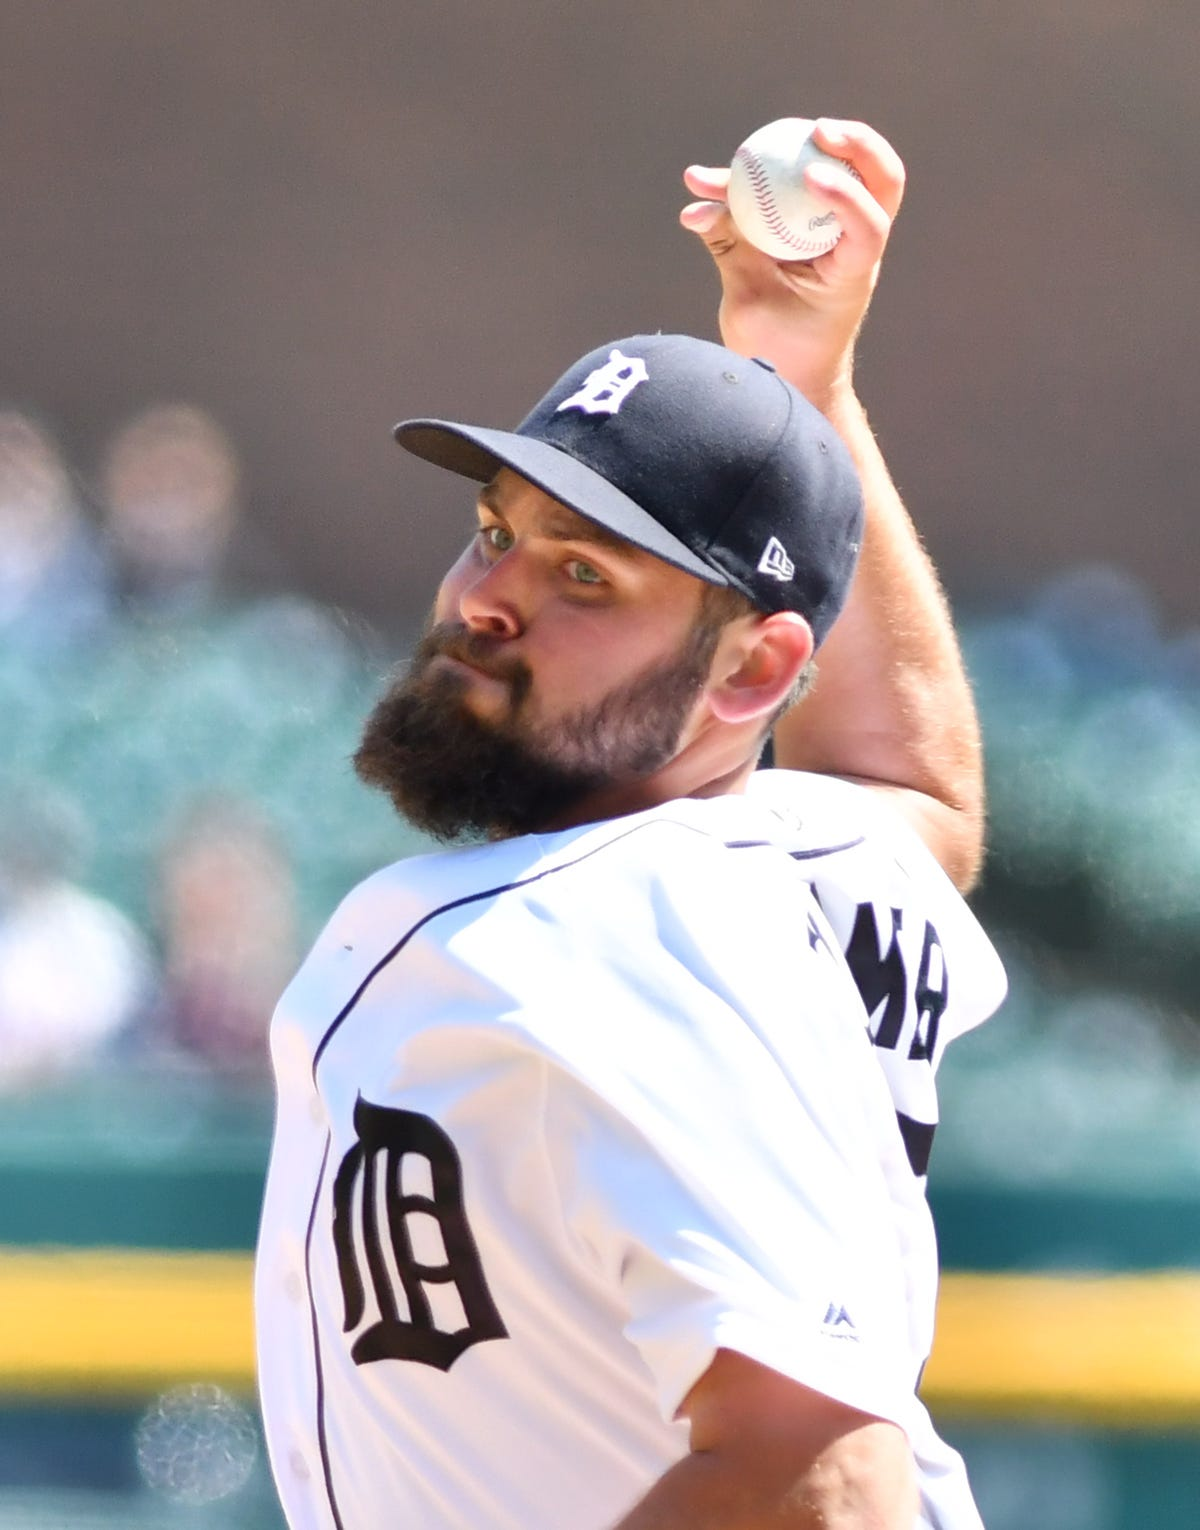 Surgery will sideline Tigers' Michael Fulmer 3-4 months